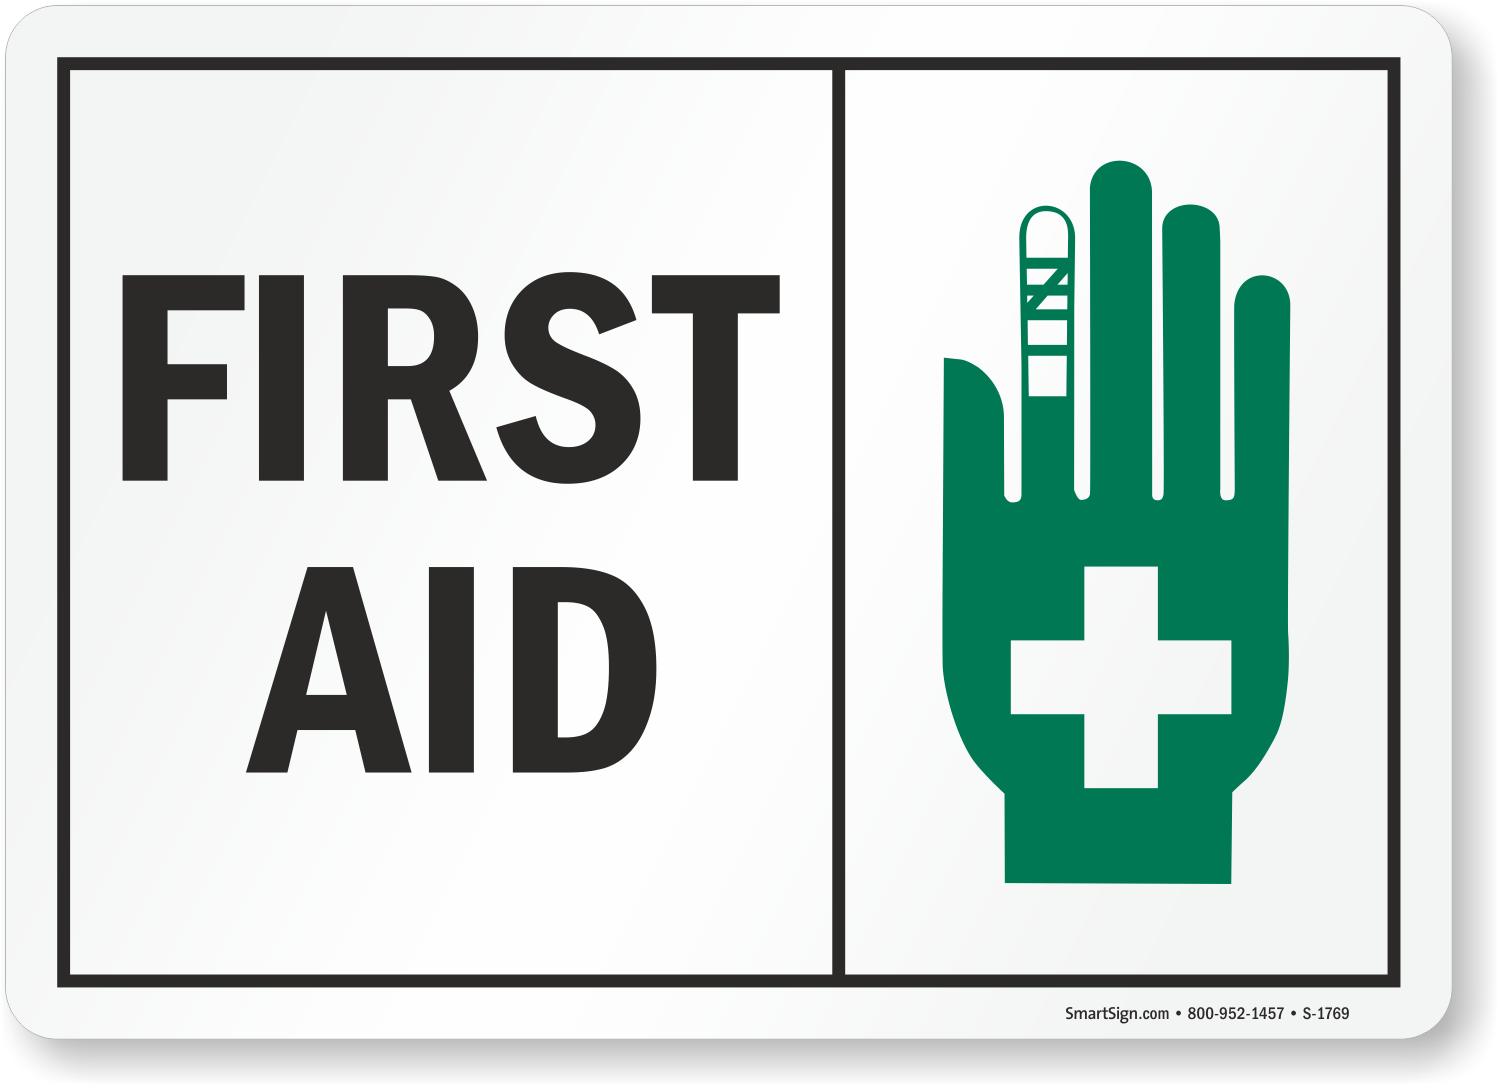 First Aid Stickers  First Aid Kit Stickers. Imthatgirlfriend Signs Of Stroke. Ladder Signs. Legionella Pneumophila Signs. Line Leader Signs Of Stroke. Oct Signs. West Virginia Signs Of Stroke. Primary School Signs Of Stroke. Relieve Signs